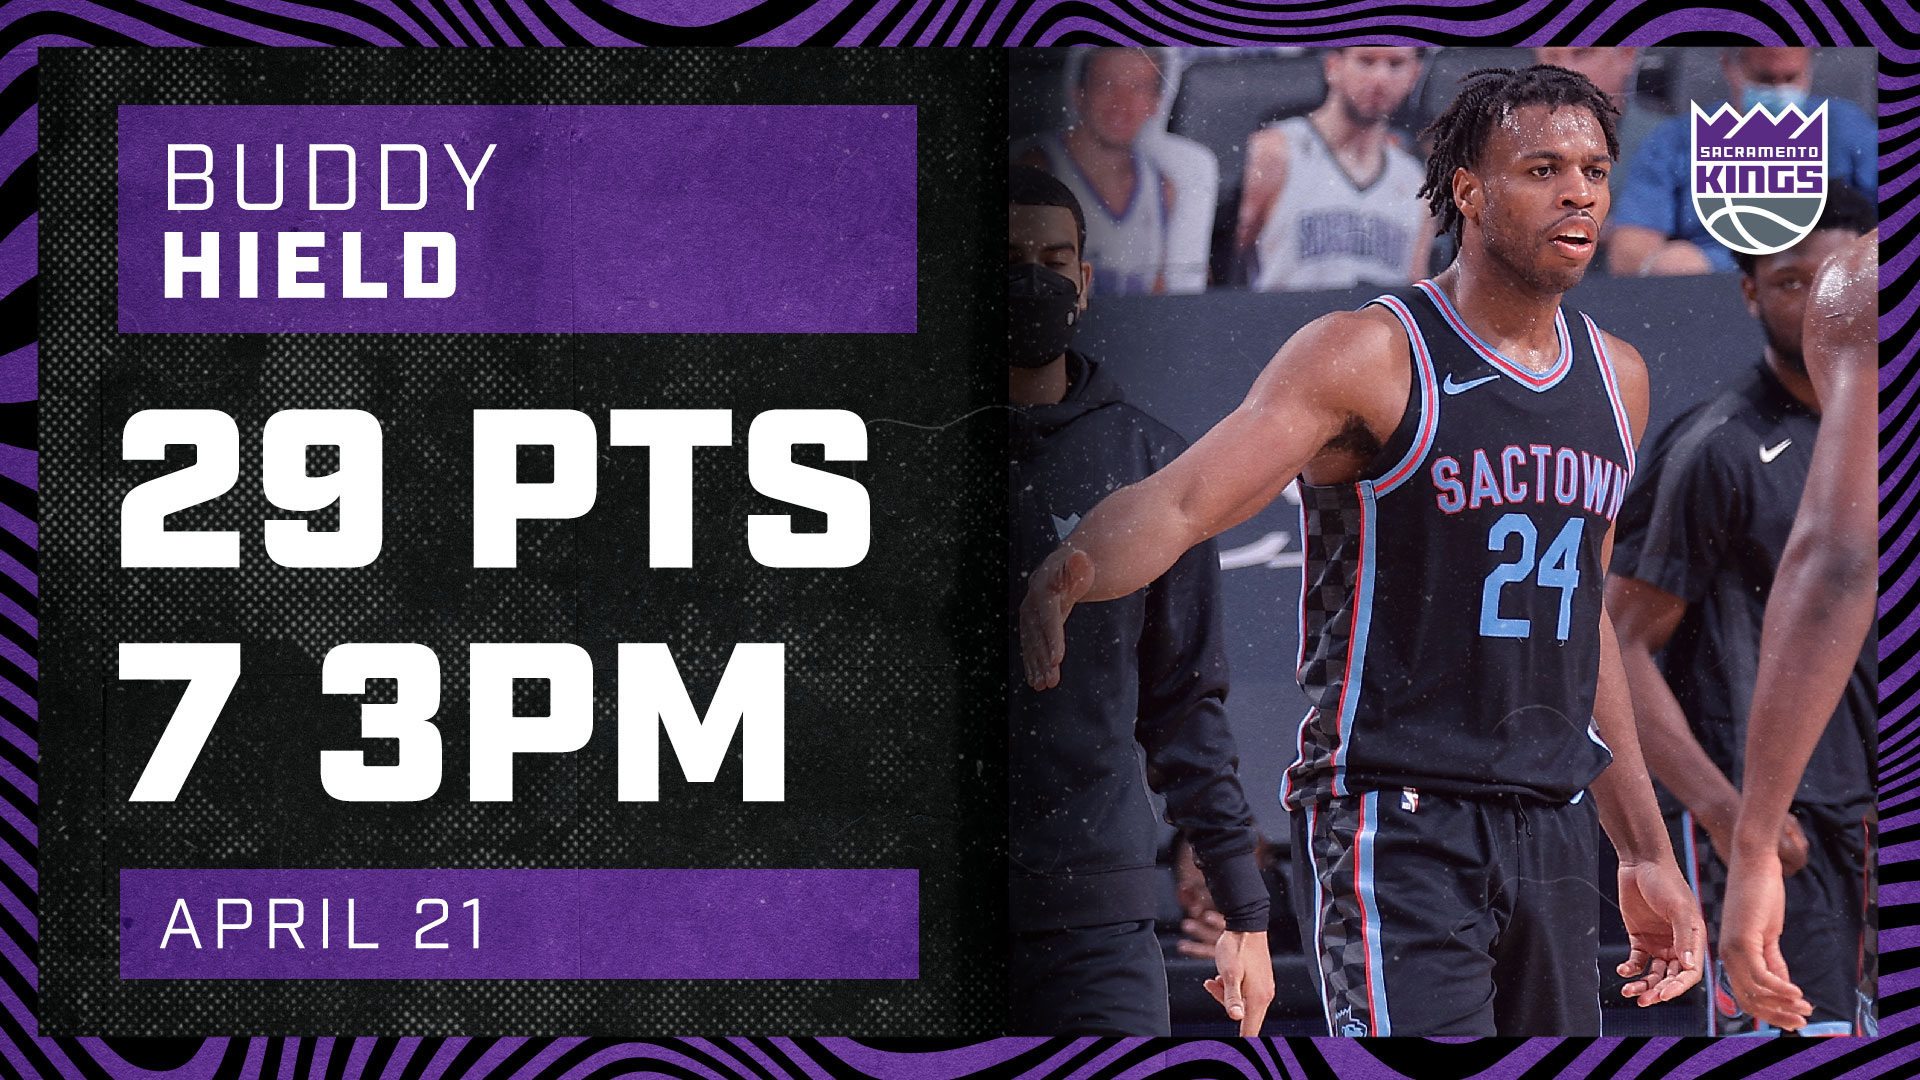 Buddy Hield Drops 29 PTS with 7 Threes! | Kings vs Wolves 4.21.21